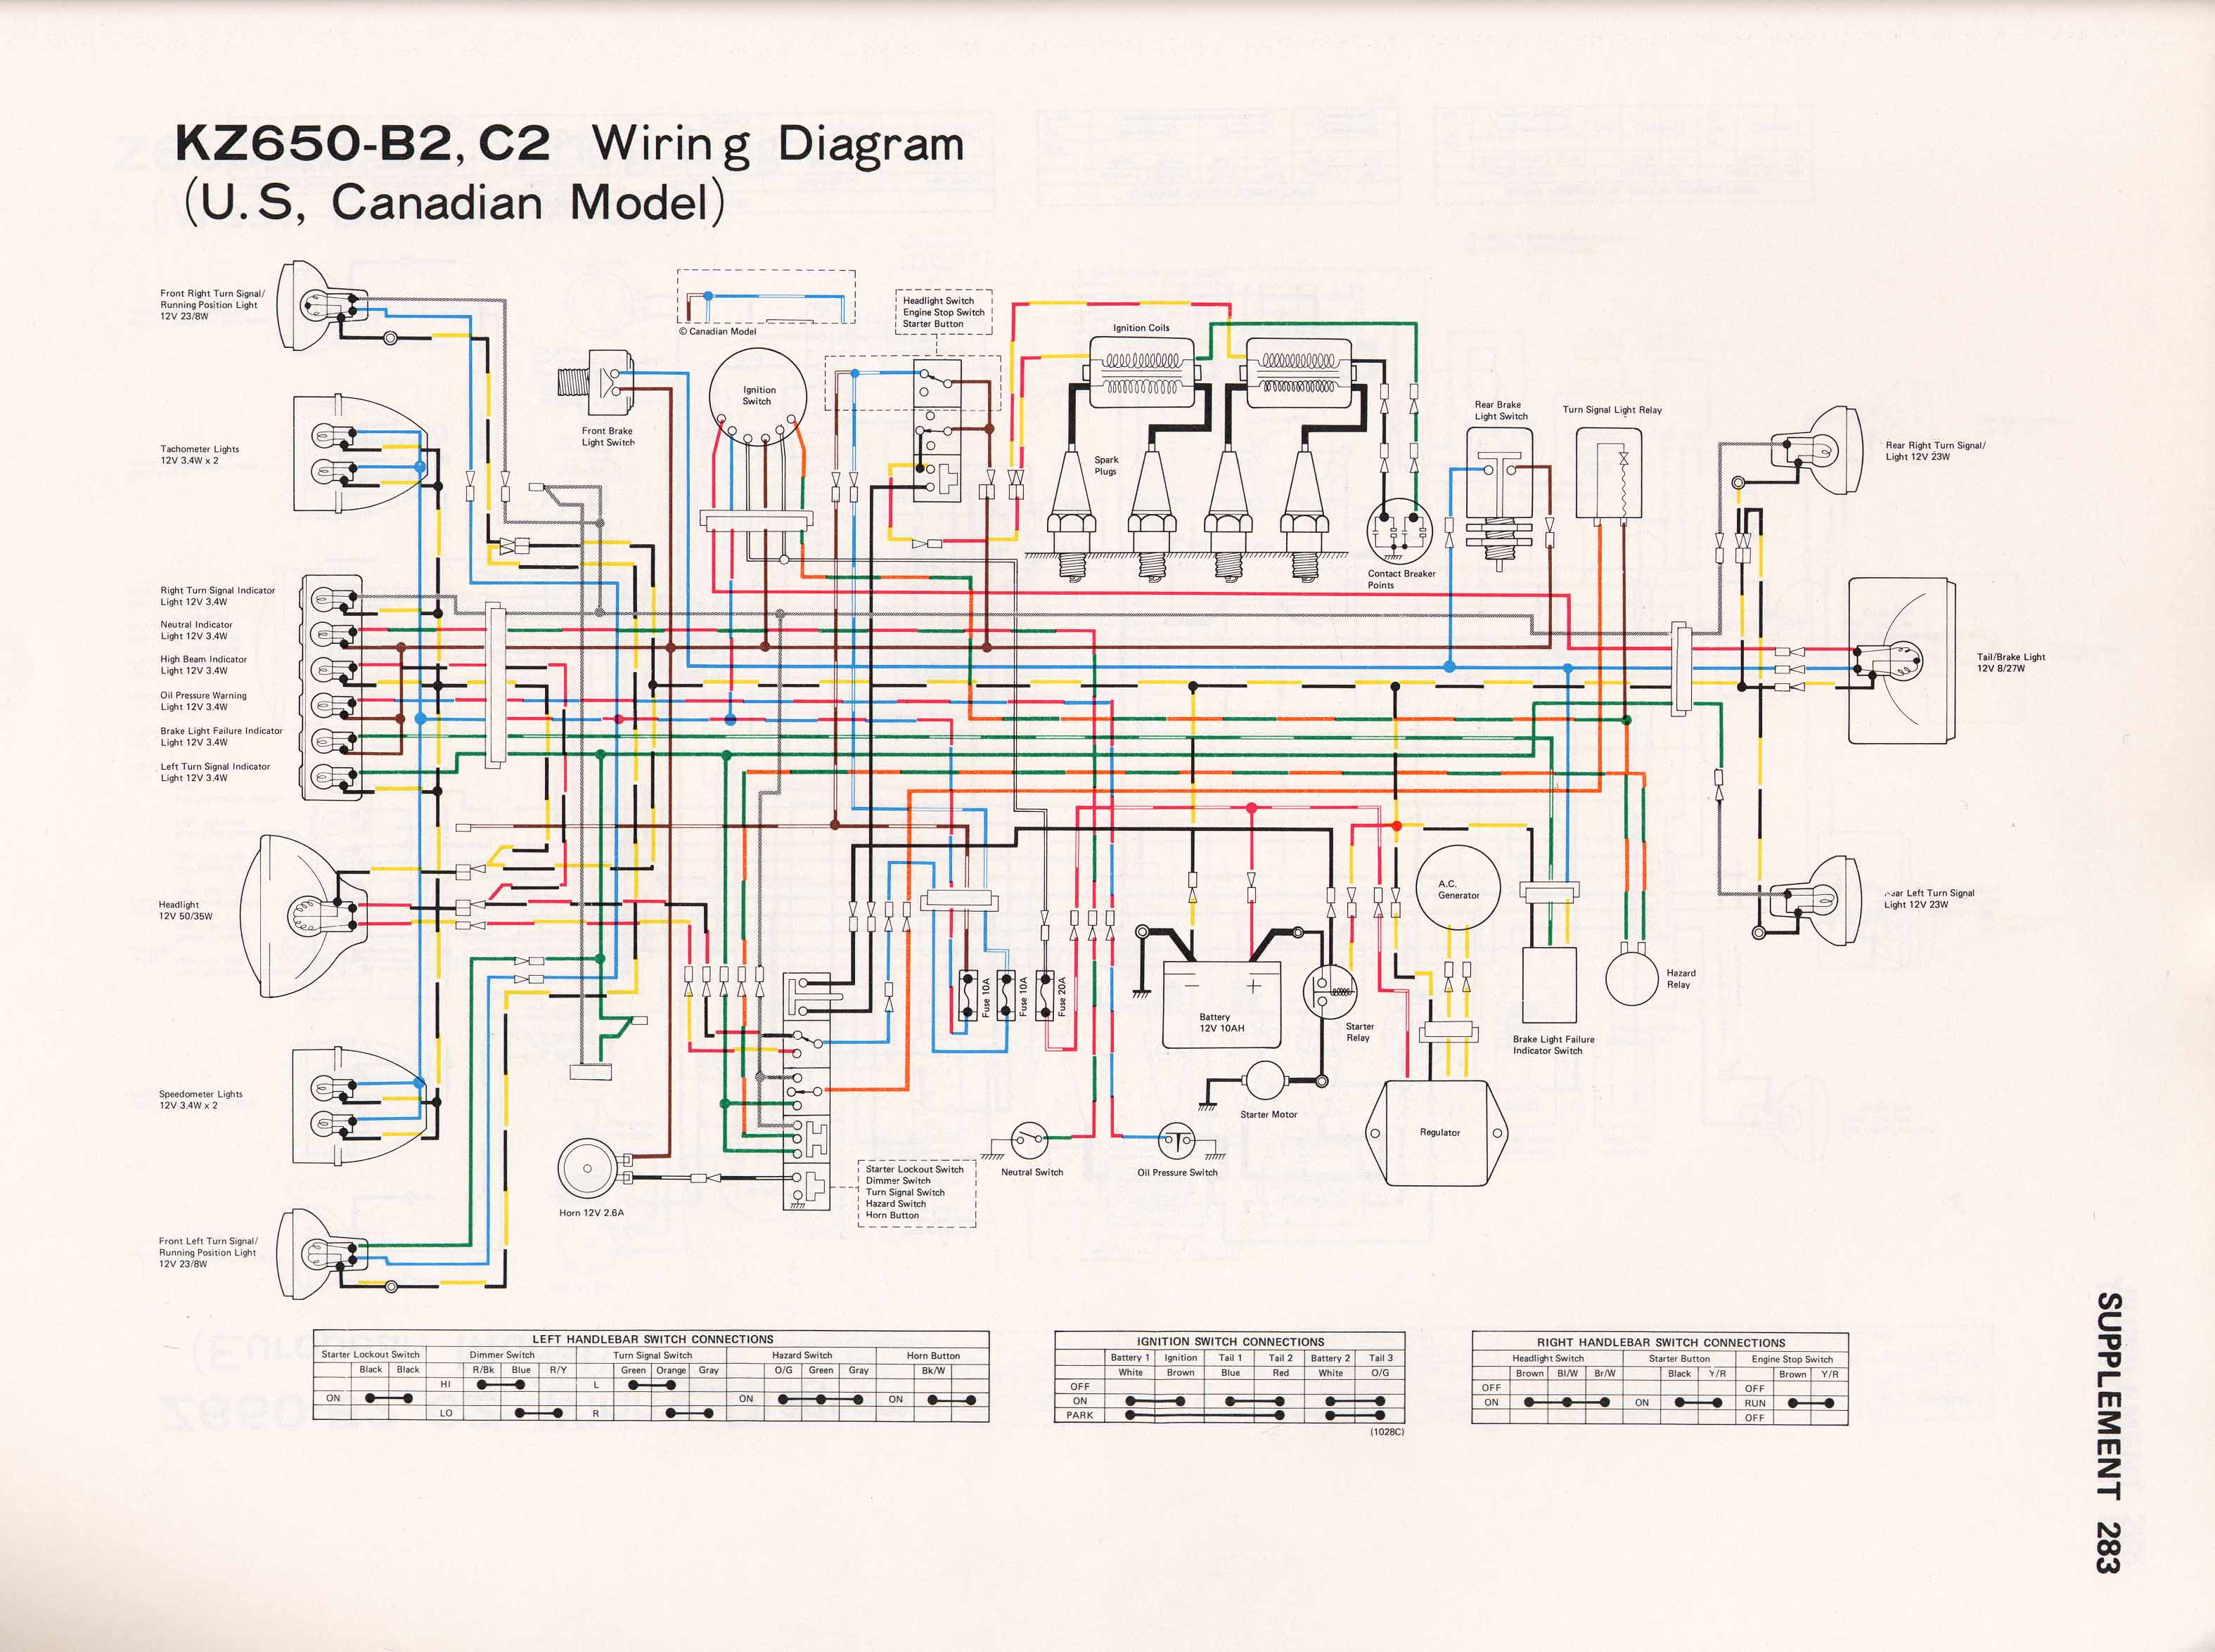 Coil Wiring Diagram For Brake Rectifier Library Lawn Mower Kz650 Diagrams